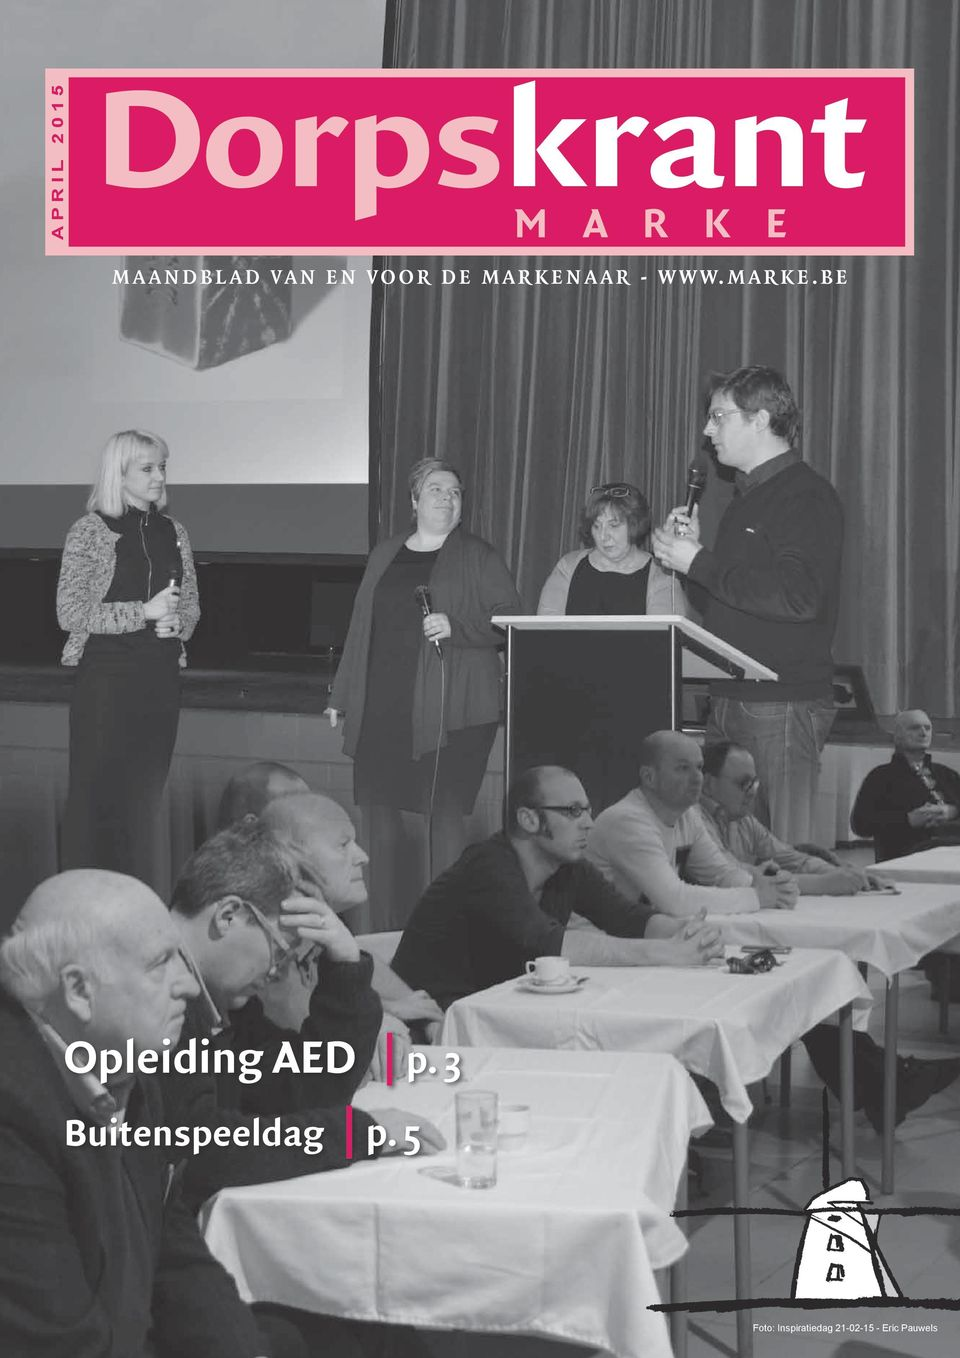 marke.be Opleiding AED p.